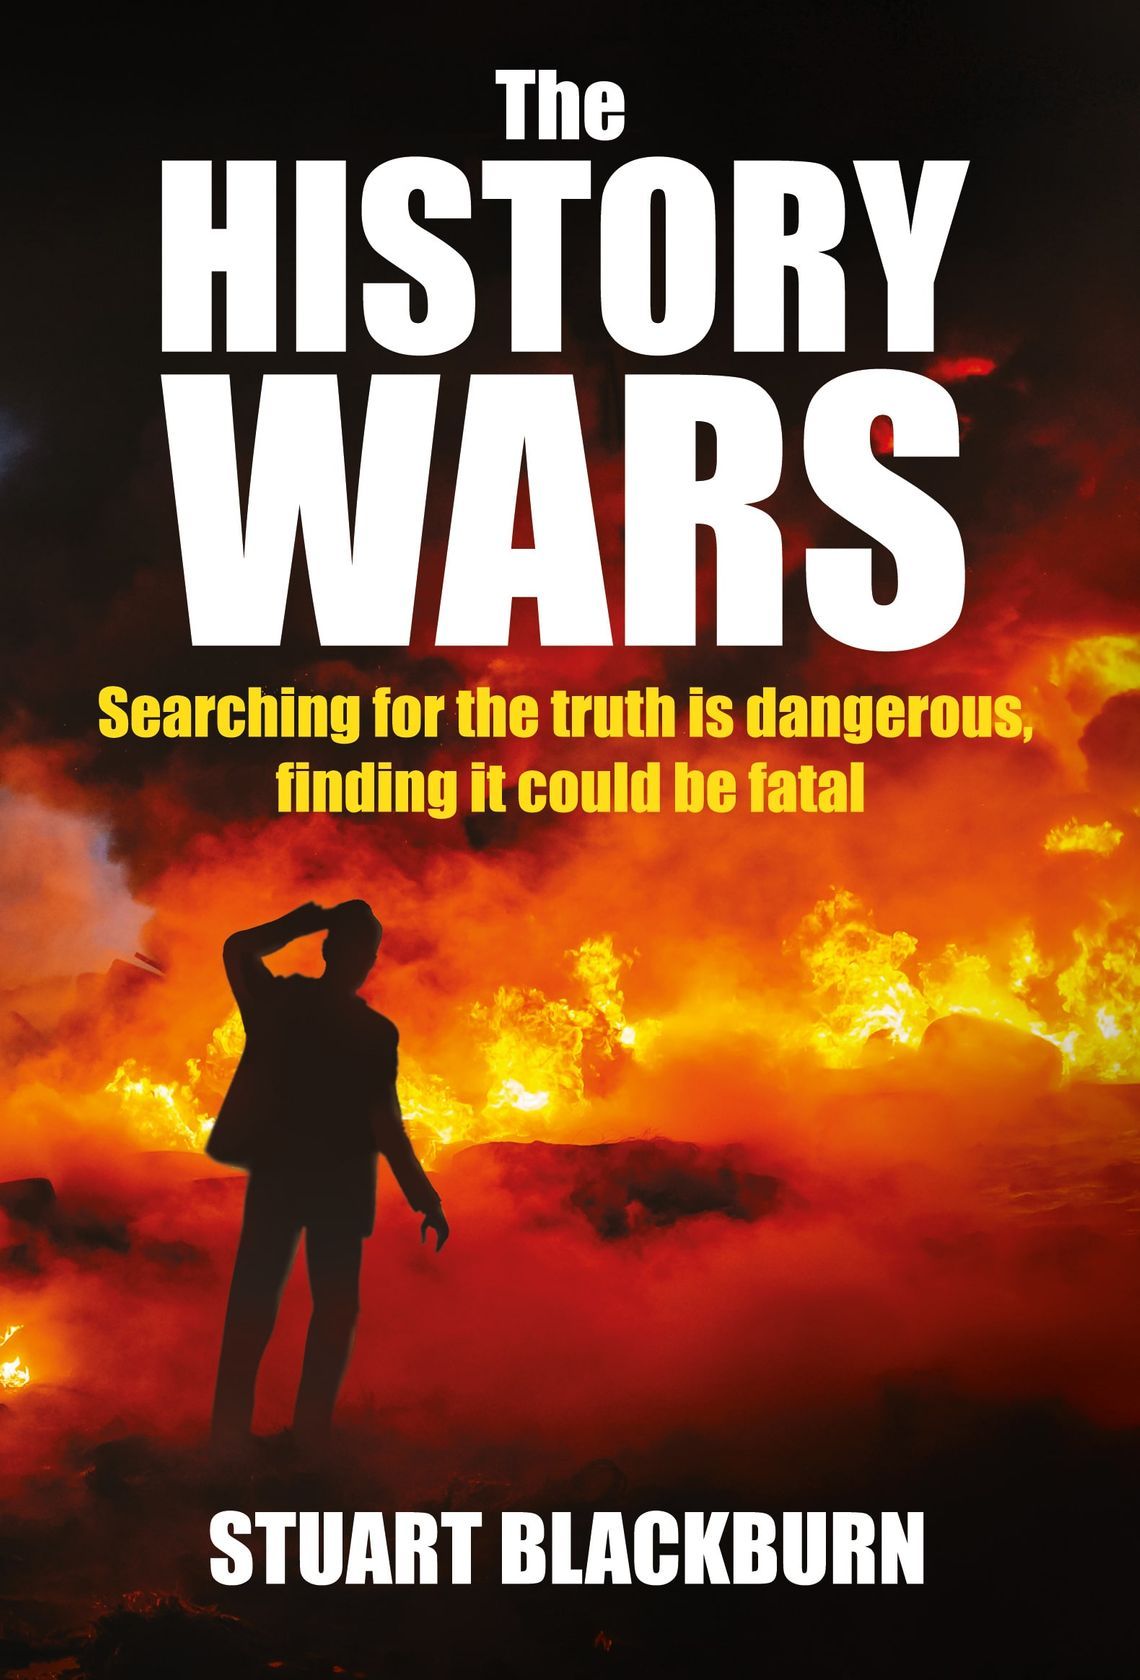 'The History Wars' by Stuart Blackburn